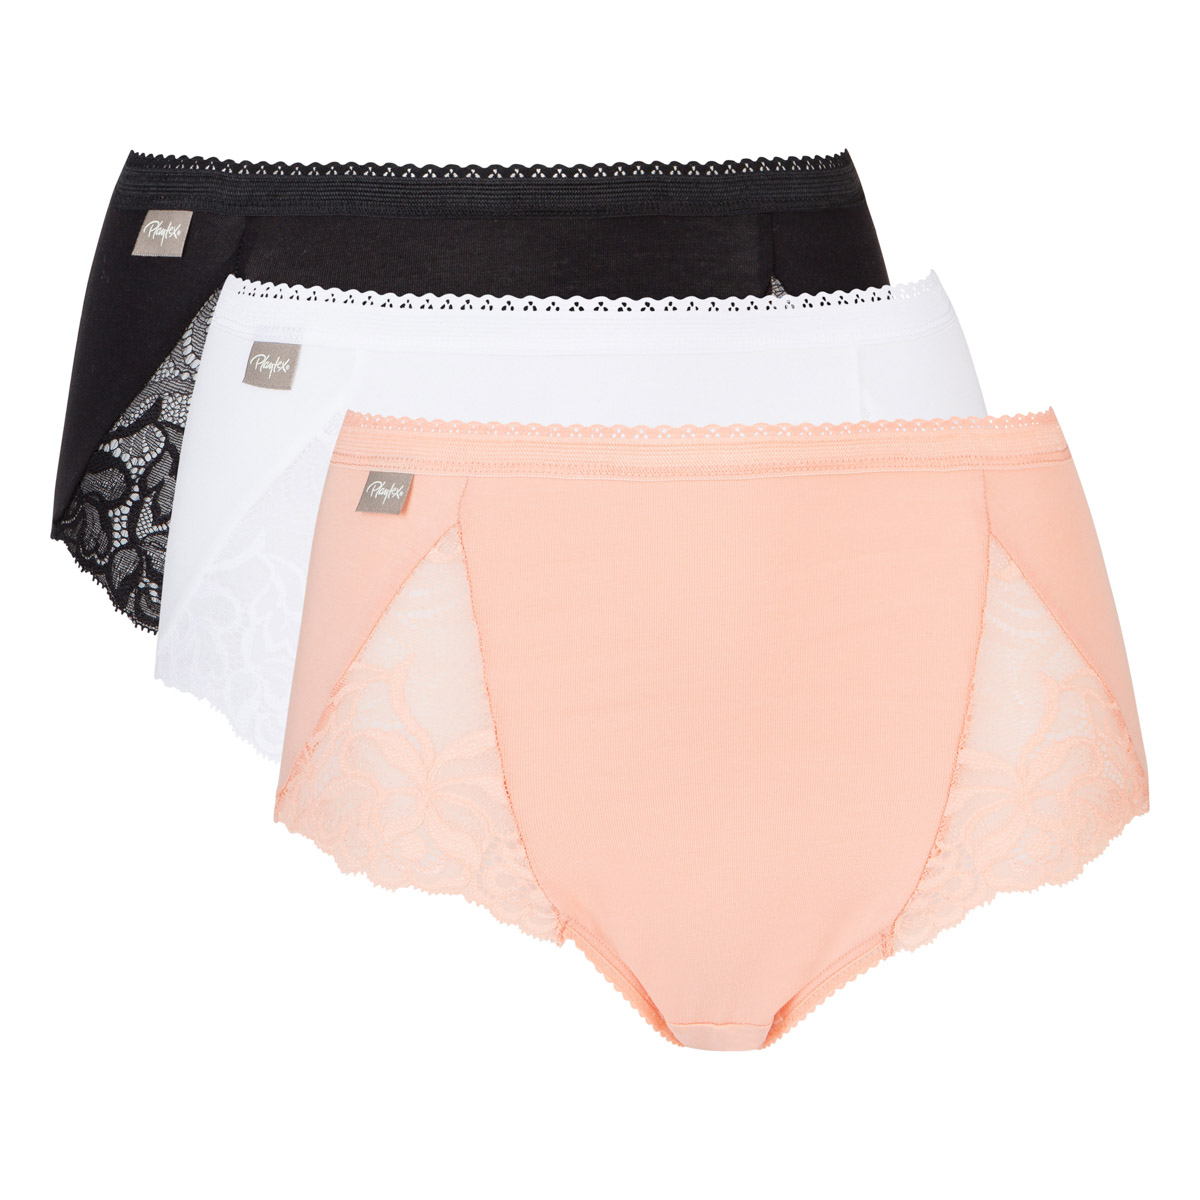 3 pack of midi knickers white/ pink sand/ black - Feminine Cotton , , PLAYTEX